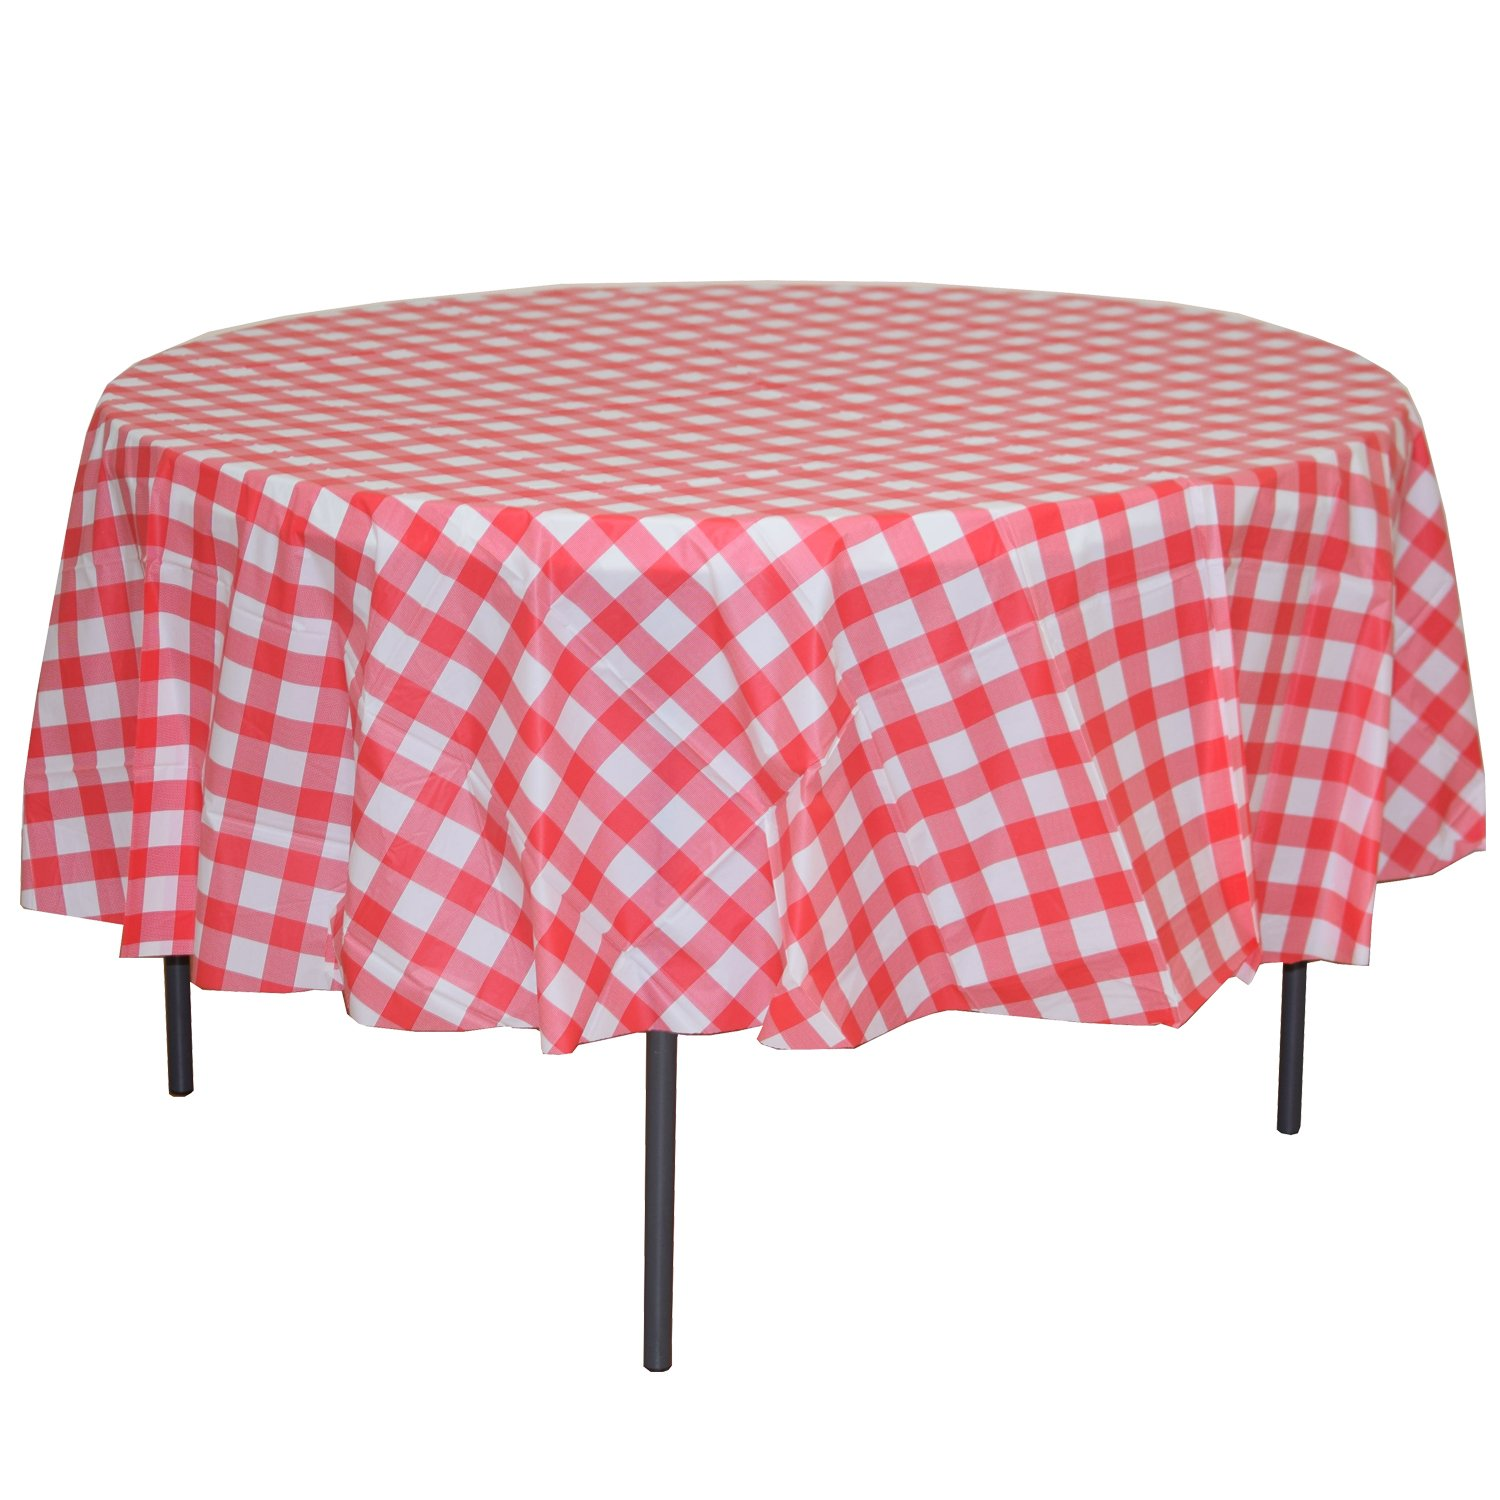 Exquisite 12 Pack Premium Round Plastic Checkered BBQ Tablecloth - Red & White Gingham Checkerboard Disposable Plastic Tablecloth 84 inch. Round by Exquisite